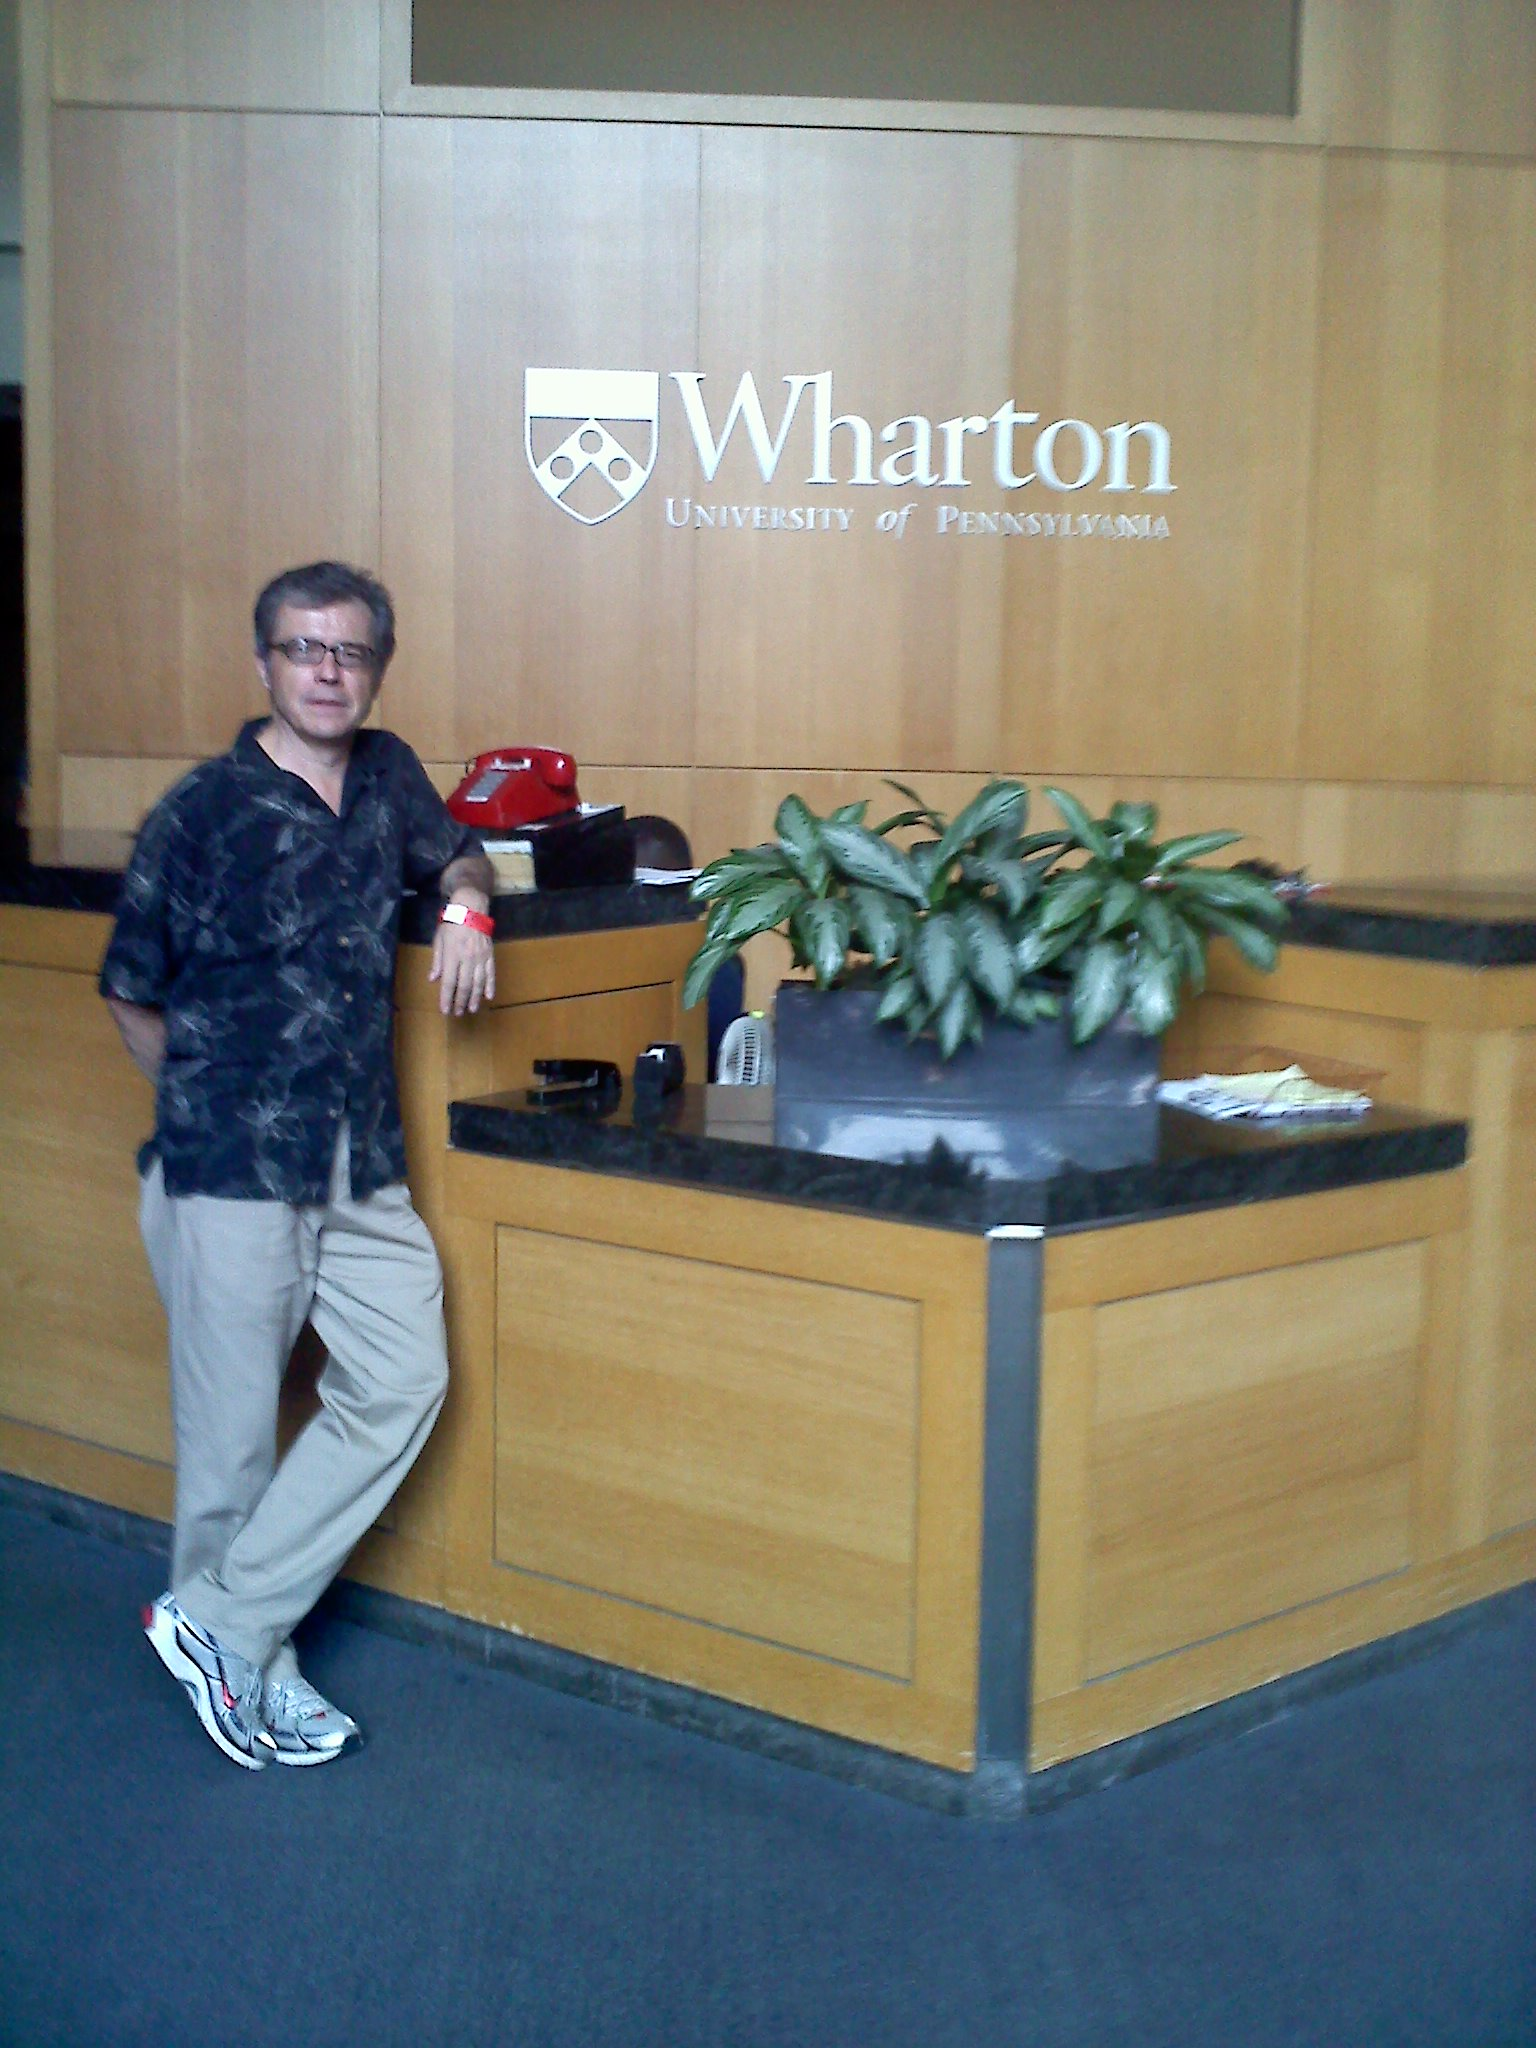 wharton essays 2009 2009年7月5日 reapplicants who applied for the entering fall 2008 or 2009 class are to complete the re-applicant essays all other reapplicants are to complete the first- time applicant essays essay 1 (750-1000 words) as a leader in global business, wharton is committed to sustaining a truly global presence through its.